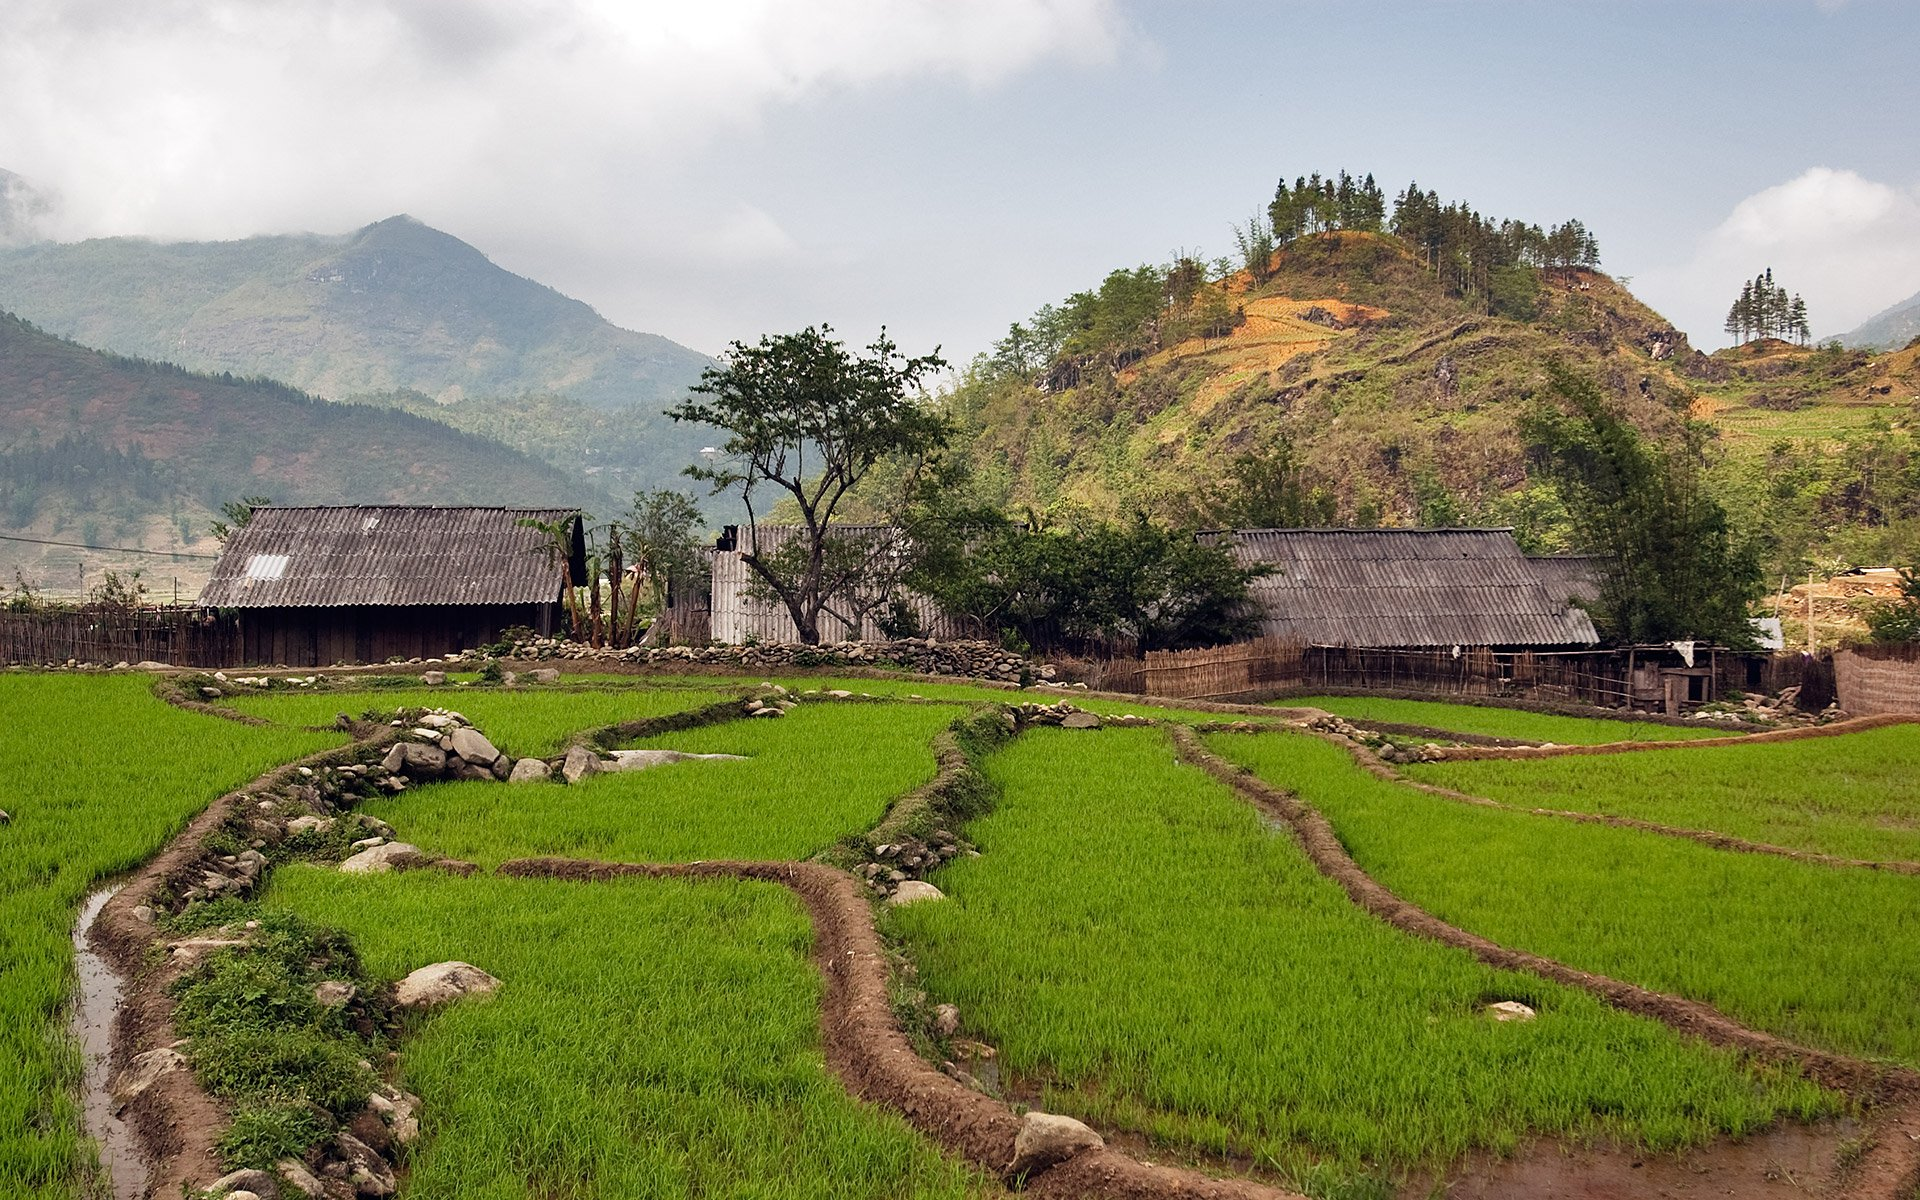 Ban Pho Village - Lesser known Sapa